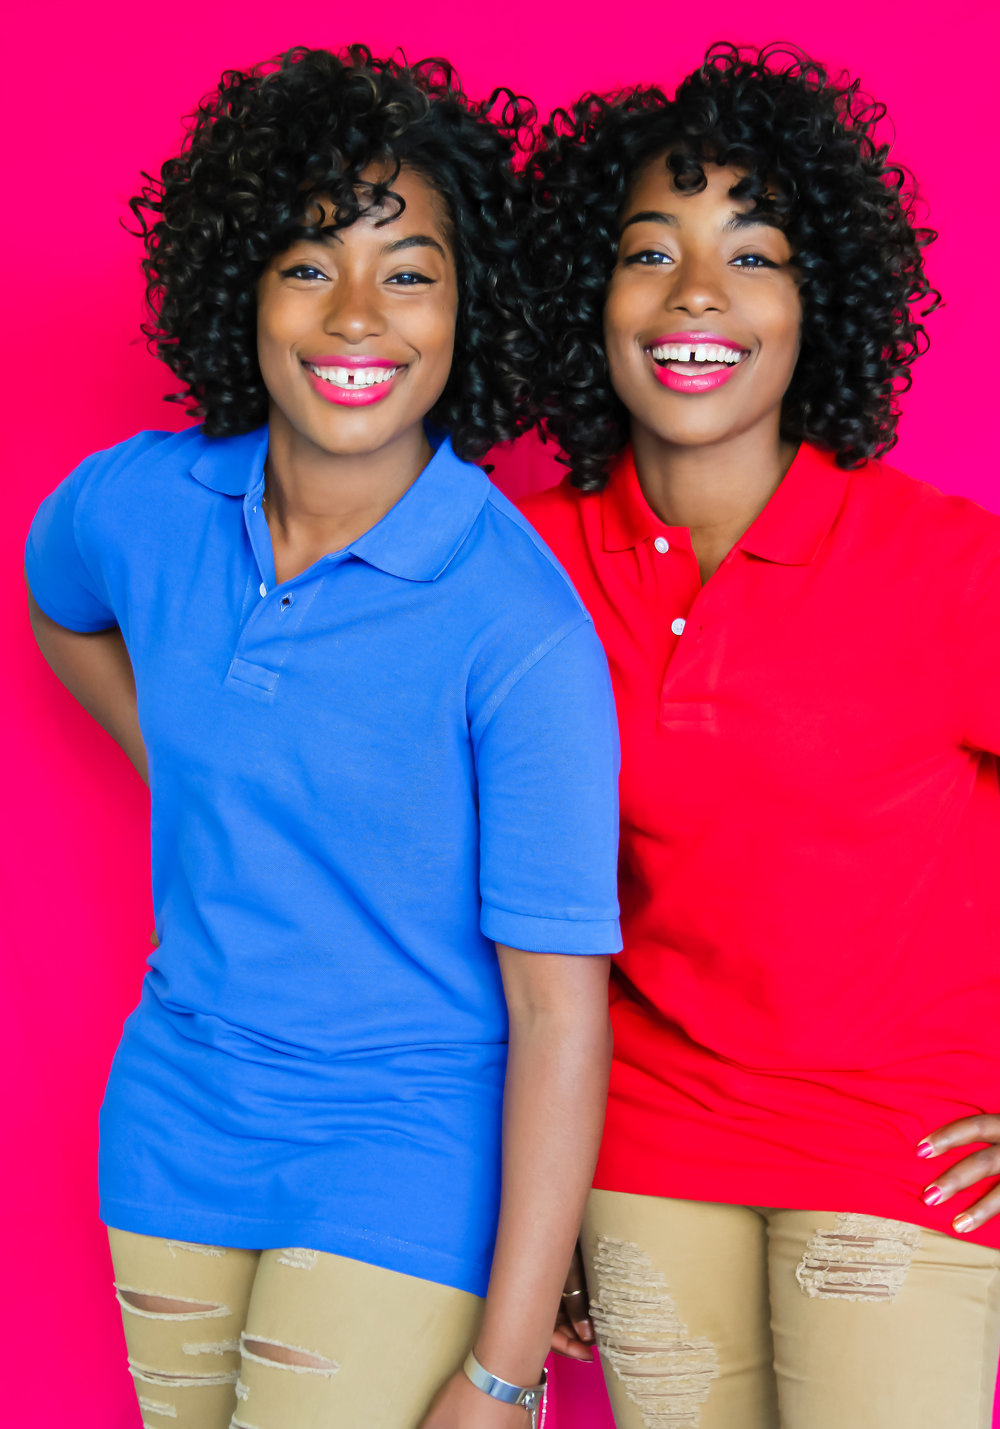 The Newman twins by Keli Squires Taylor Photography